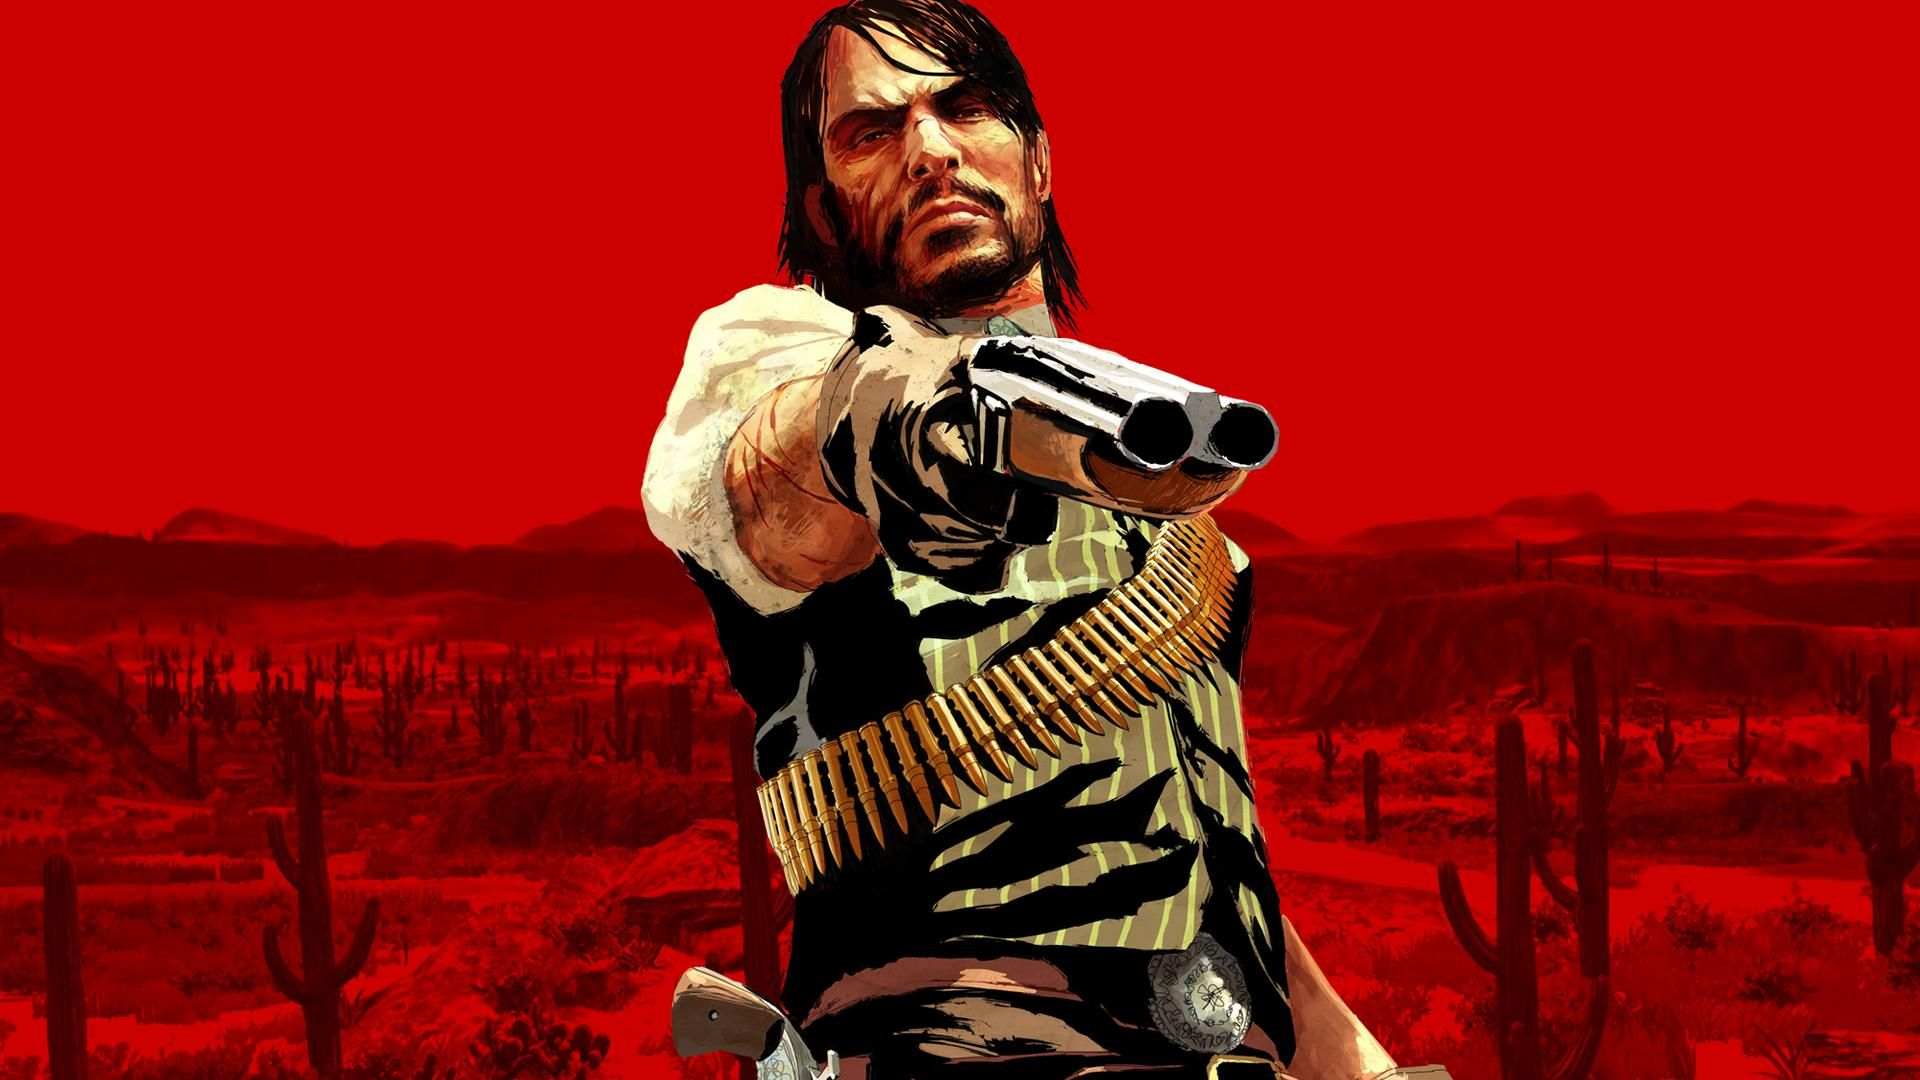 2560x1440 RDR John Marston With Gun On A Red Background Wallpaper